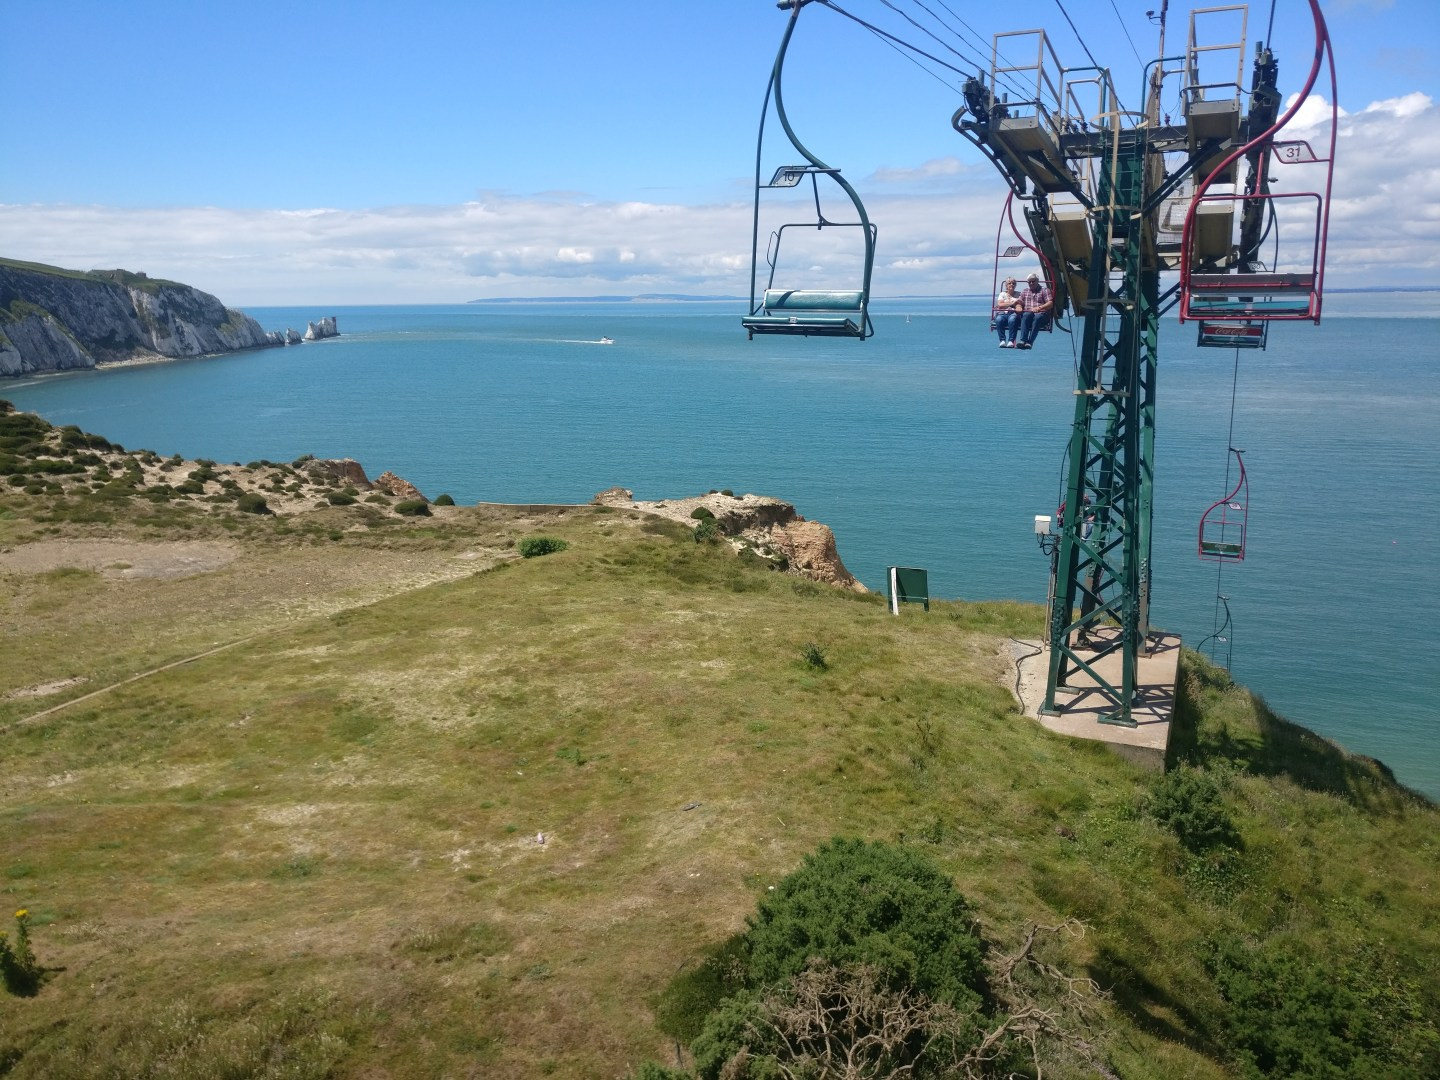 Needles viewpoint from chairlift. Photo credit Cristie Bradley